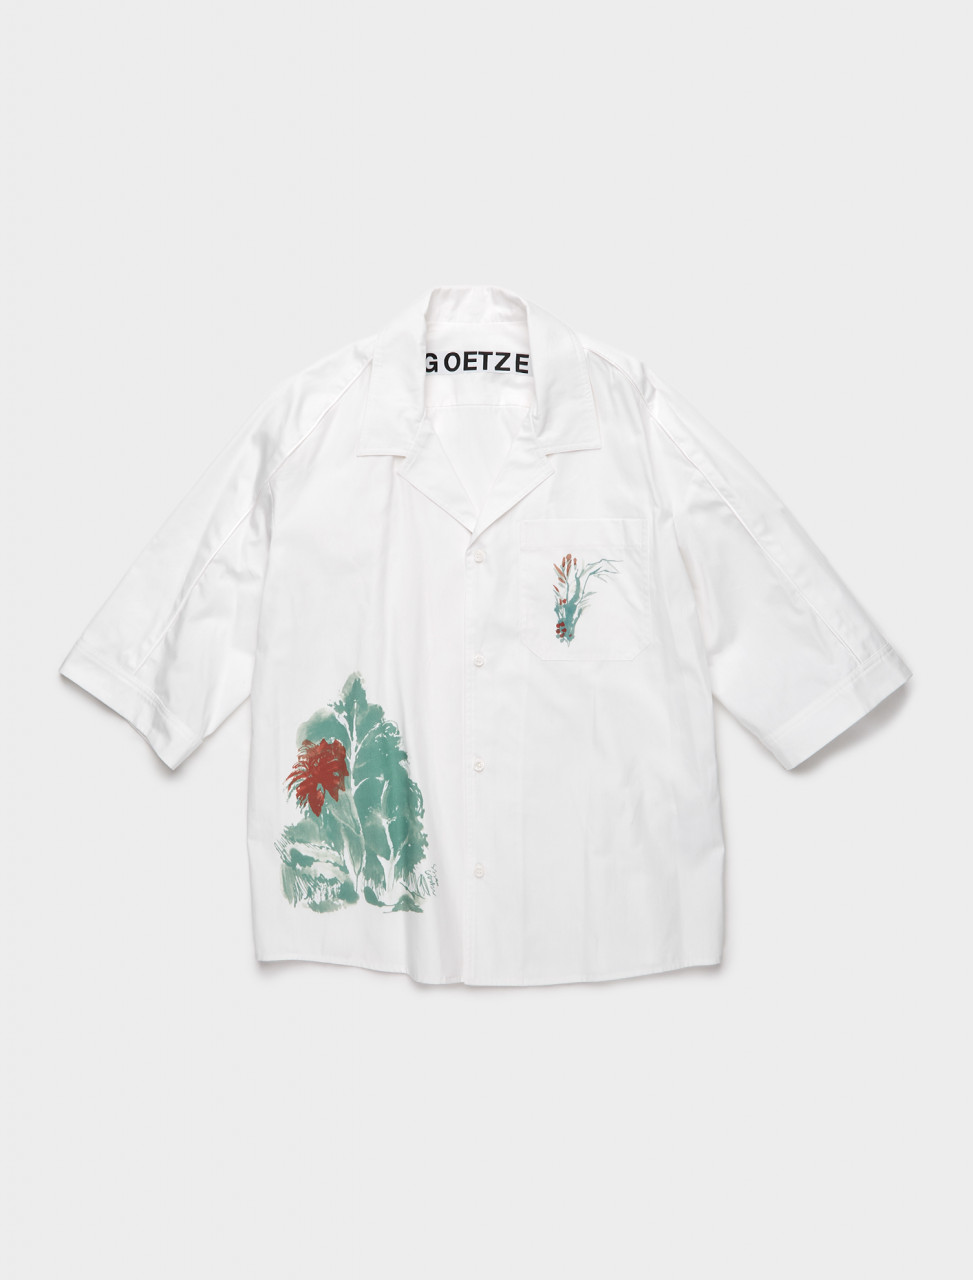 TED04 GOETZE TED PRINTED SHIRT WHITE TREE PRINT